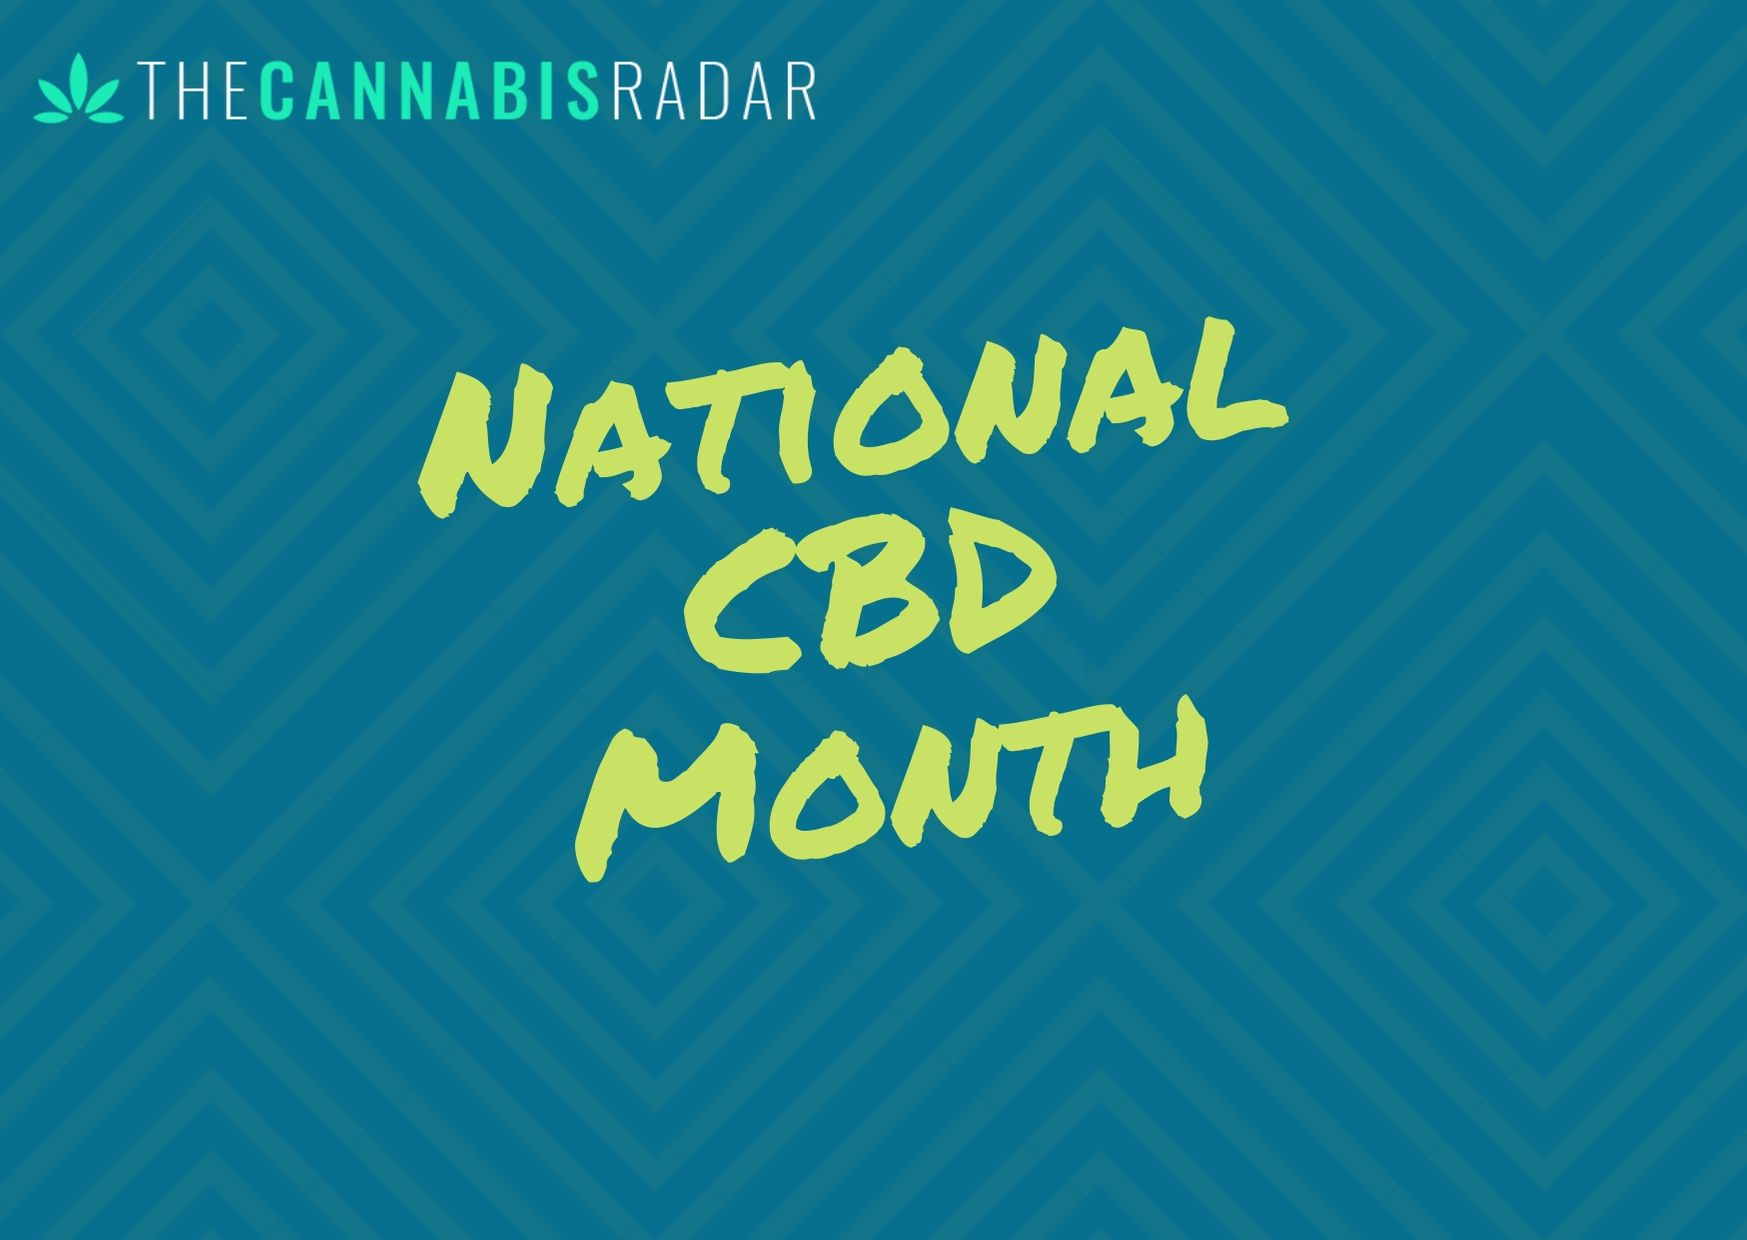 national cbd month: january 2020 recognized as the first-ever national cbd  month  the cannabis radar